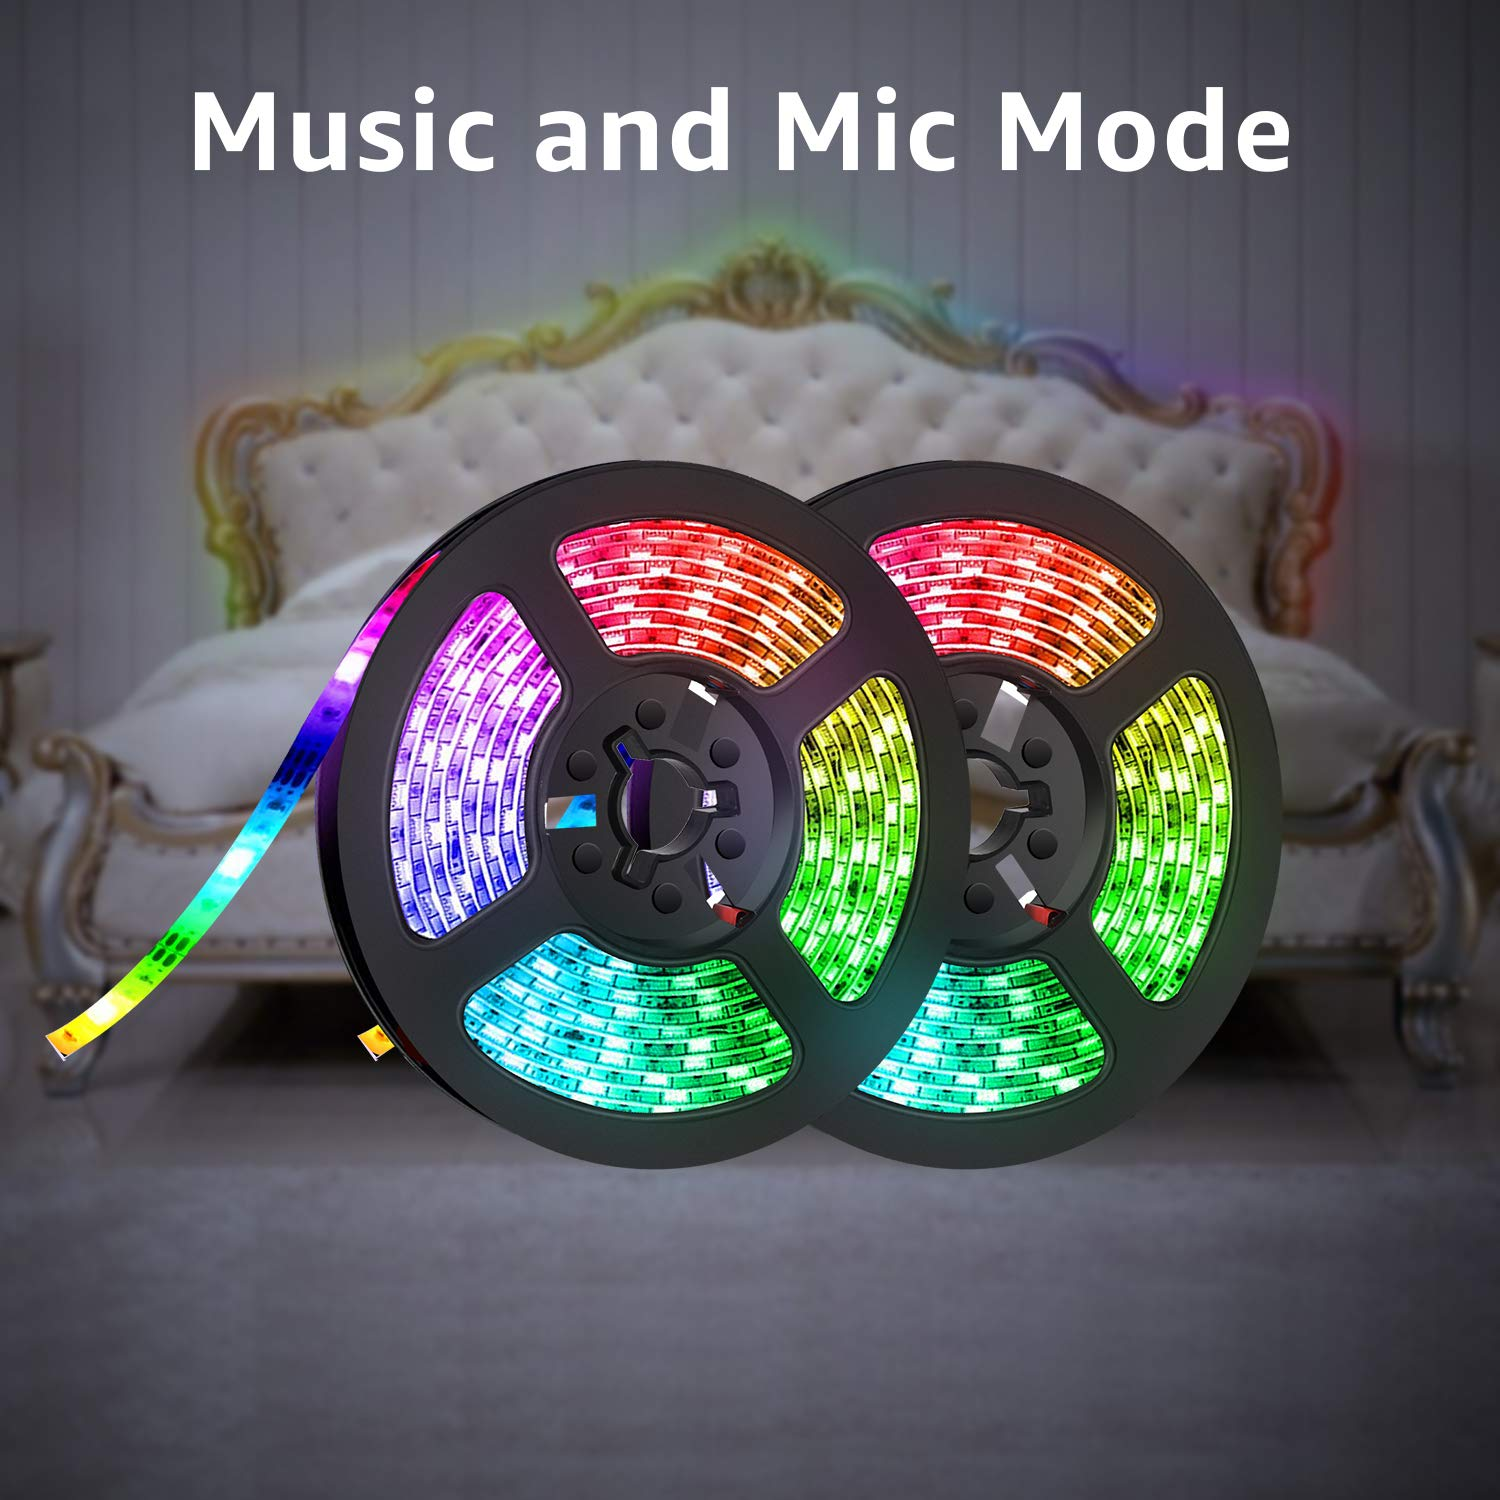 LED Strip Lights, HeySuun 32.8FT/10M 20Key RGB Light Strips, Music Sync Color Changing, Rope Light 600 SMD 3528 LED, IR Remote Controller Flexible Strip for Home Party Bedroom DIY Party Indoor Outdoor by HeySuun (Image #4)